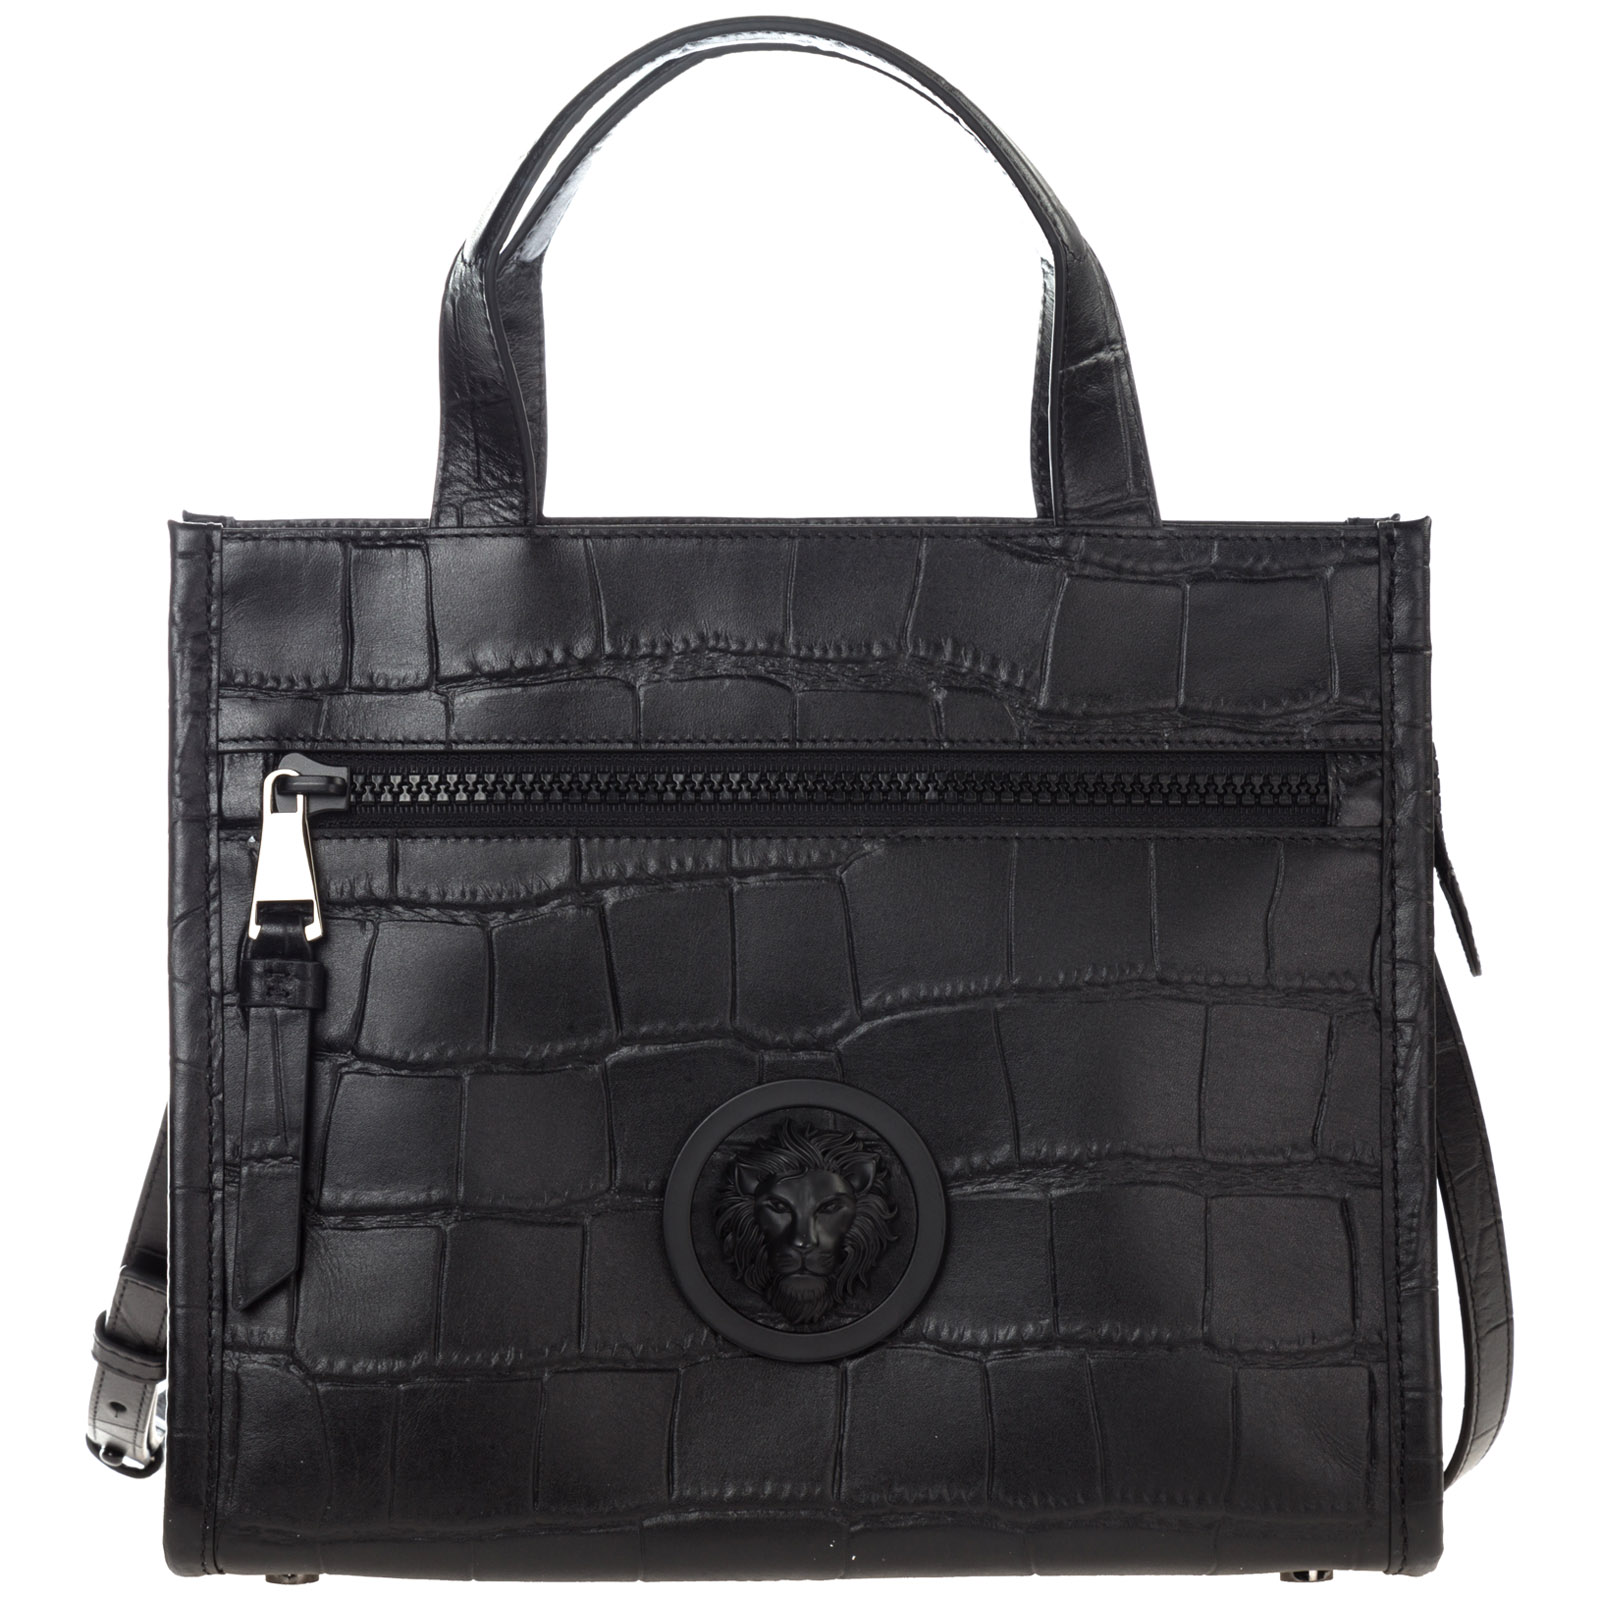 Versus Versace Women s handbag cross-body messenger bag purse lion head f579d0e2ab